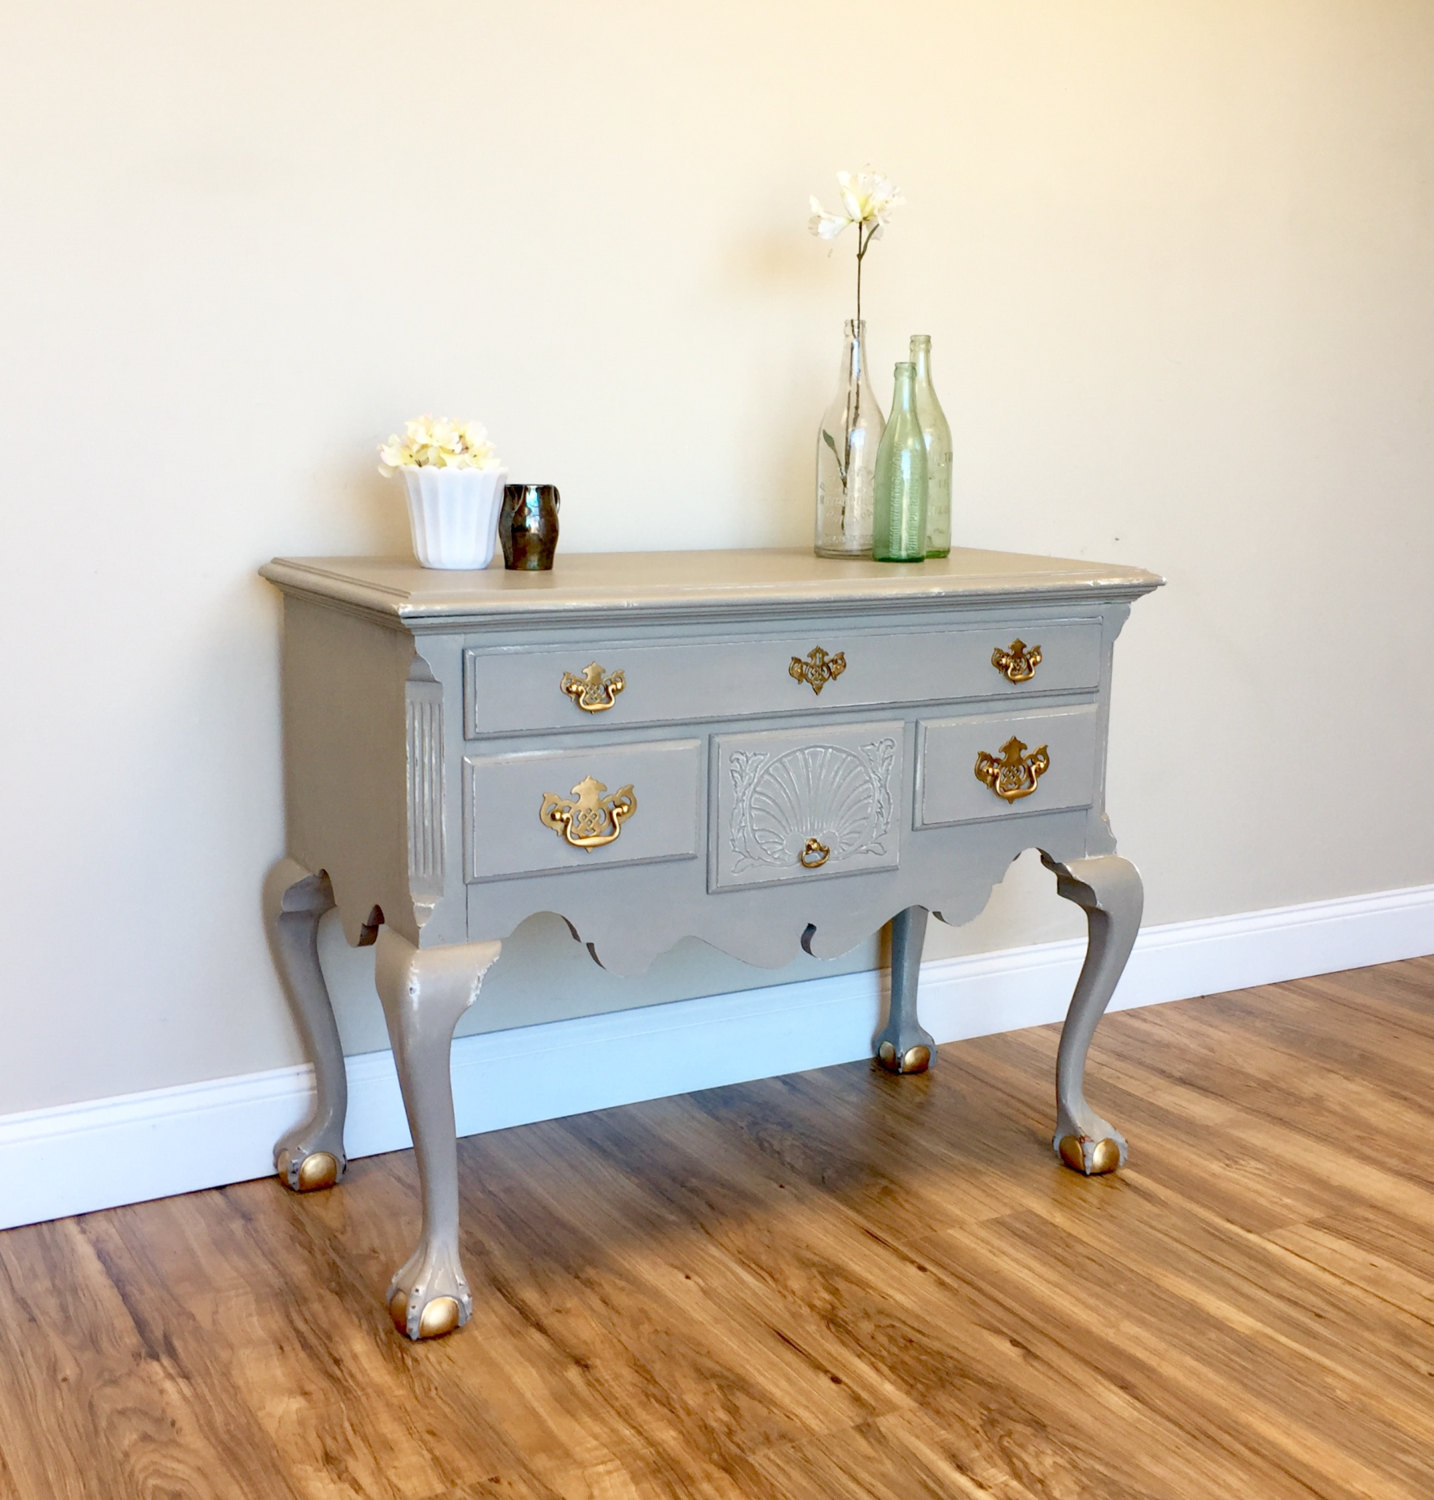 gray accent table weathered console entry way antique threshold fretwork teal turquoise lamp barnwood coffee order legs breakfast chairs west elm credenza battery powered living